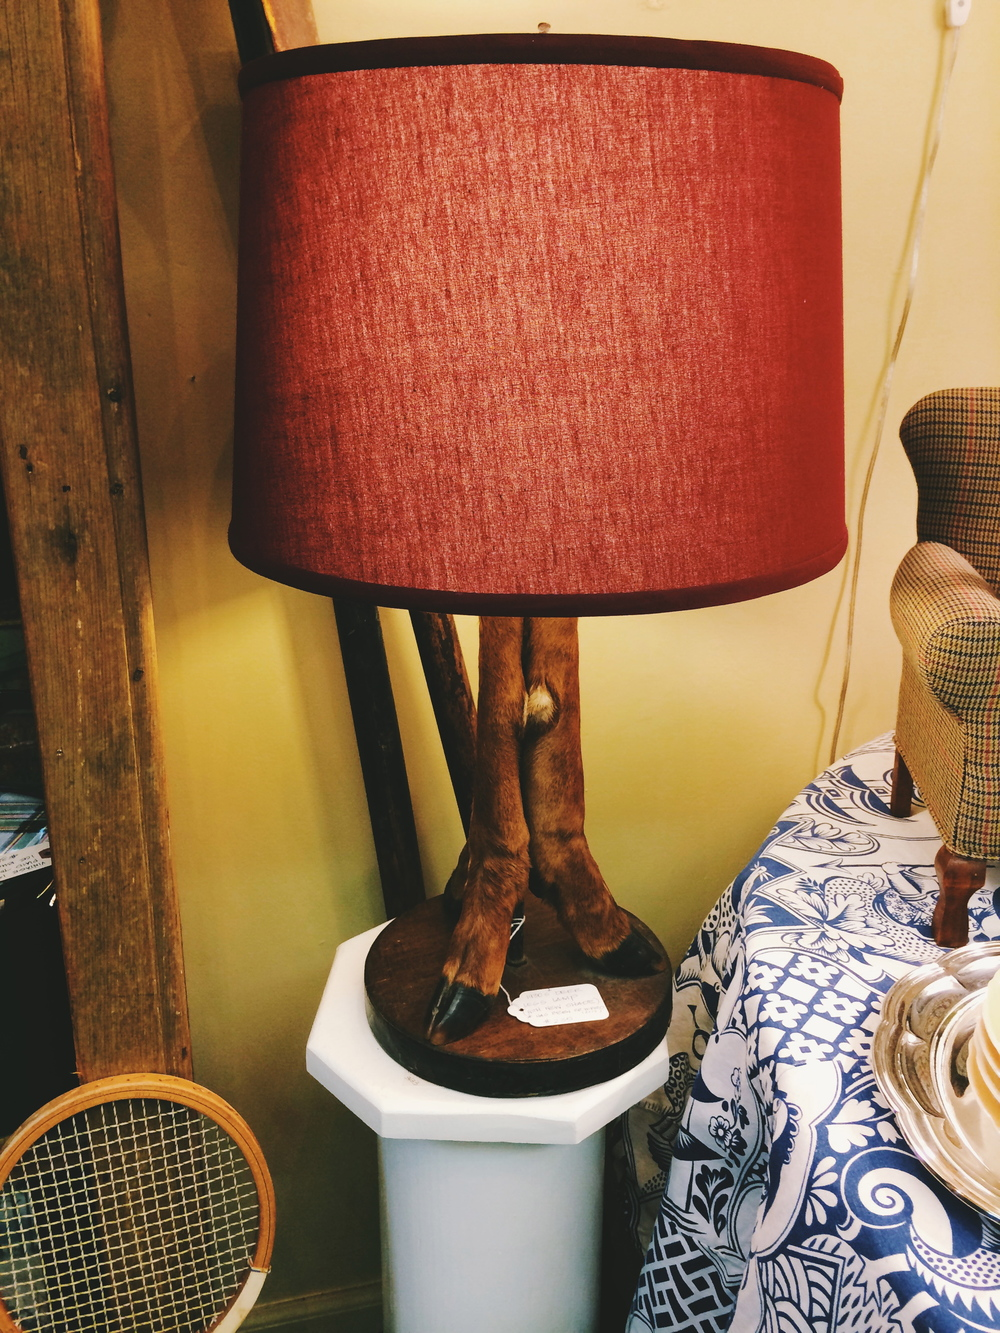 pawling-lamp-with-feet